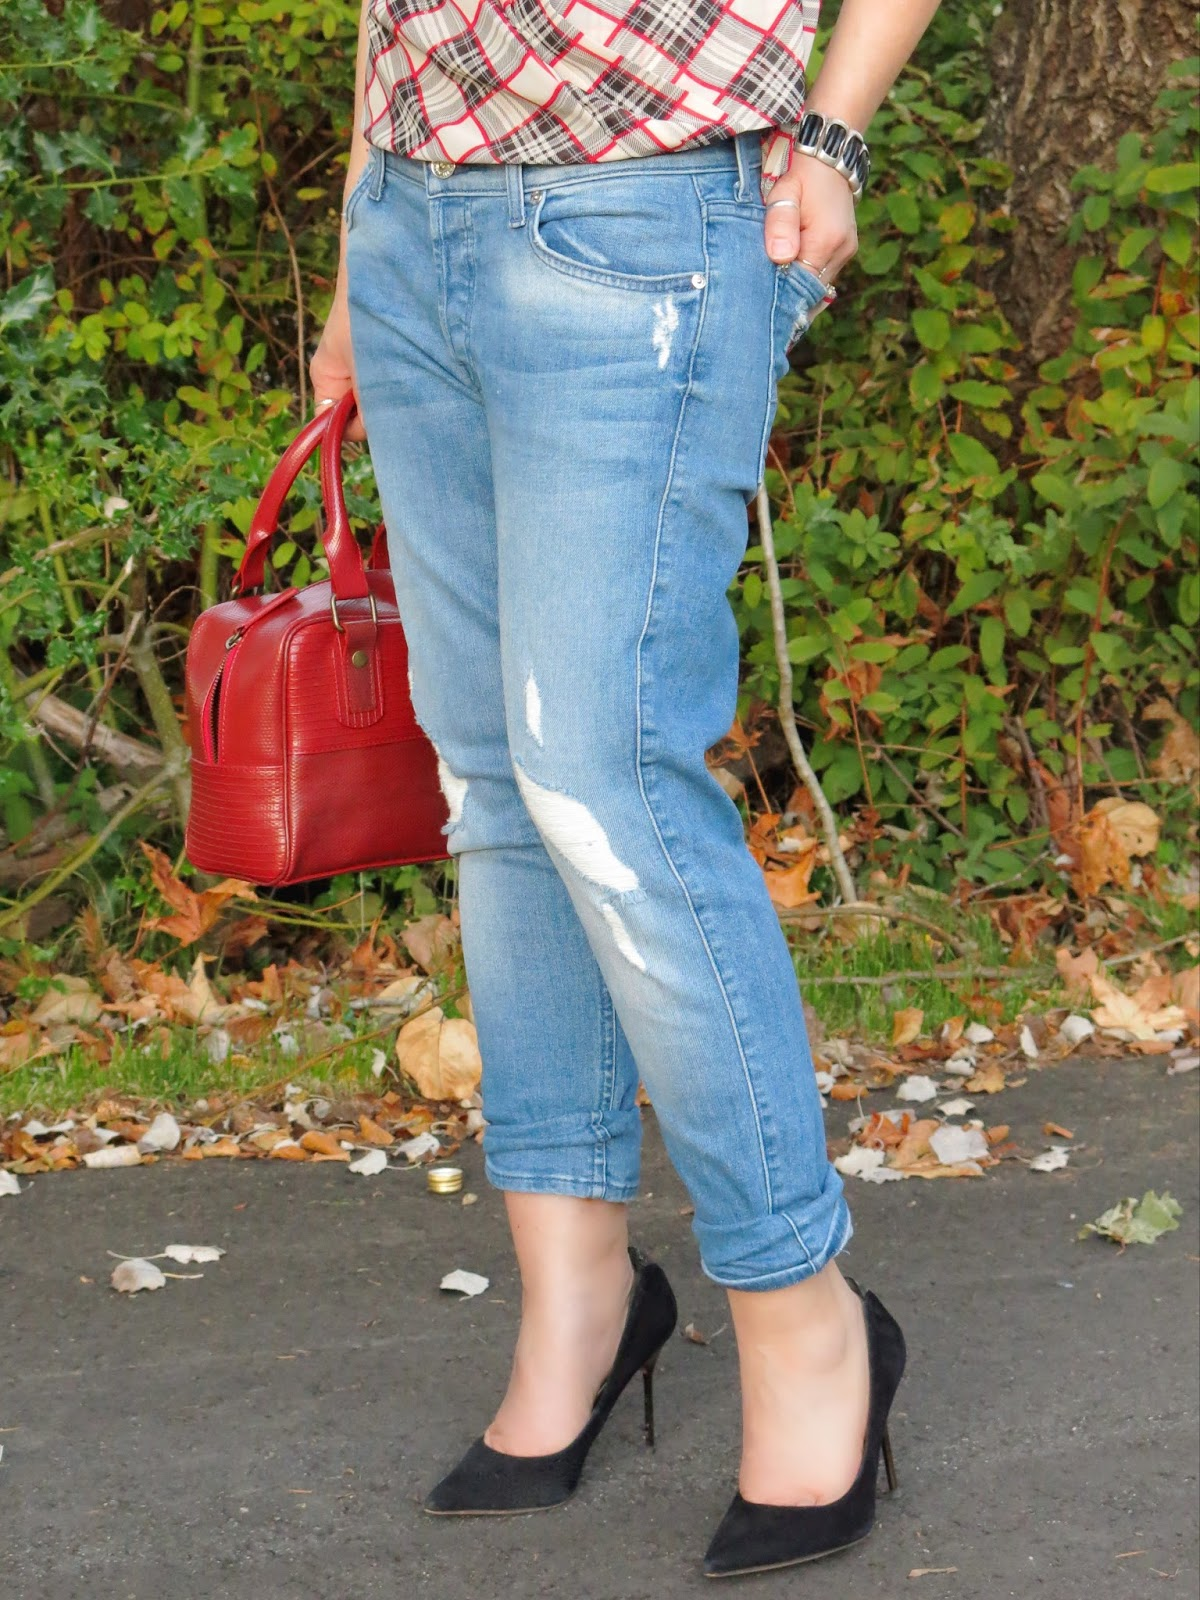 boyfriend jeans, plaid blouse, Sam Edelman pumps, and Elvis & Kresse bag